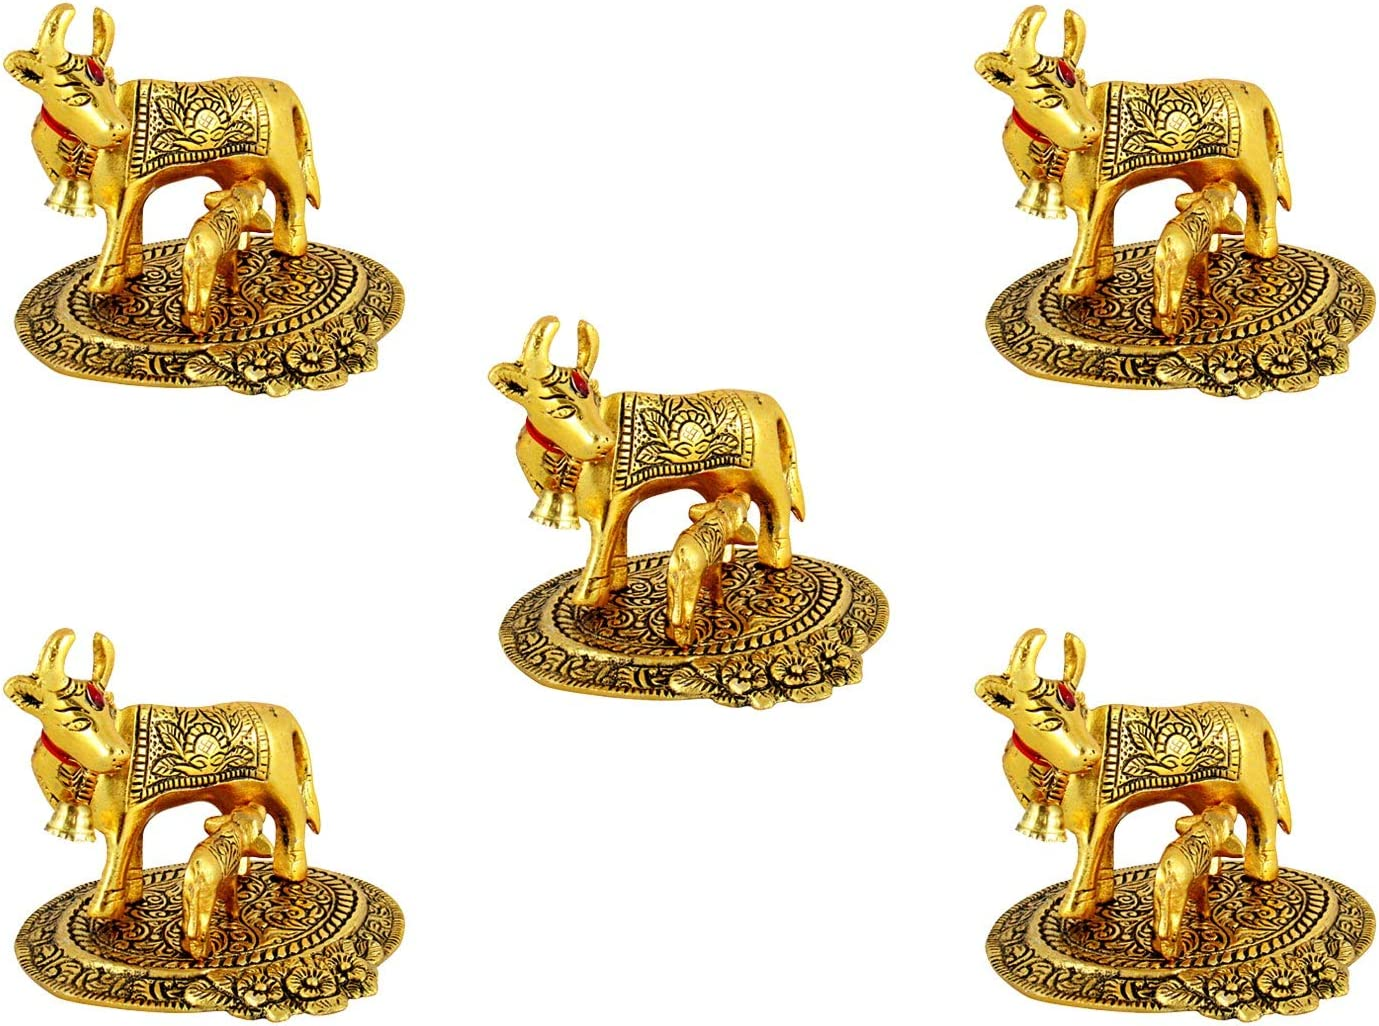 GoldGiftIdeas Oxidized Gold Plated Cow and Calf Idol (13 x 12 cm), Home Decor Showpiece for Gift, Housewarming Return Gift, Cow Statue Home Decor (Pack of 5)